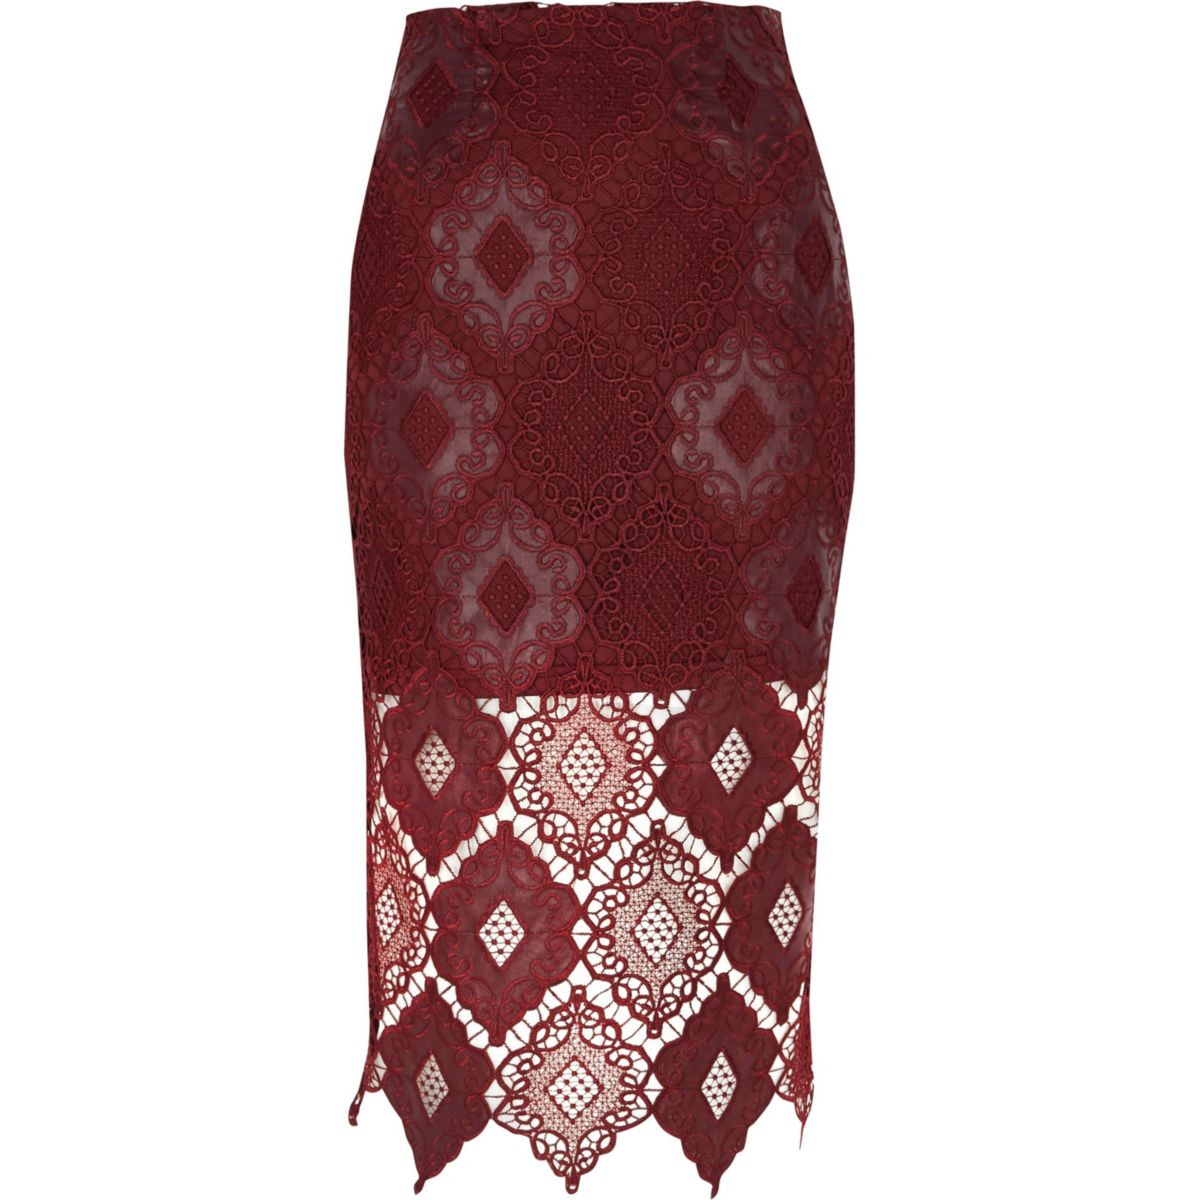 Dark red lace scallop pencil skirt